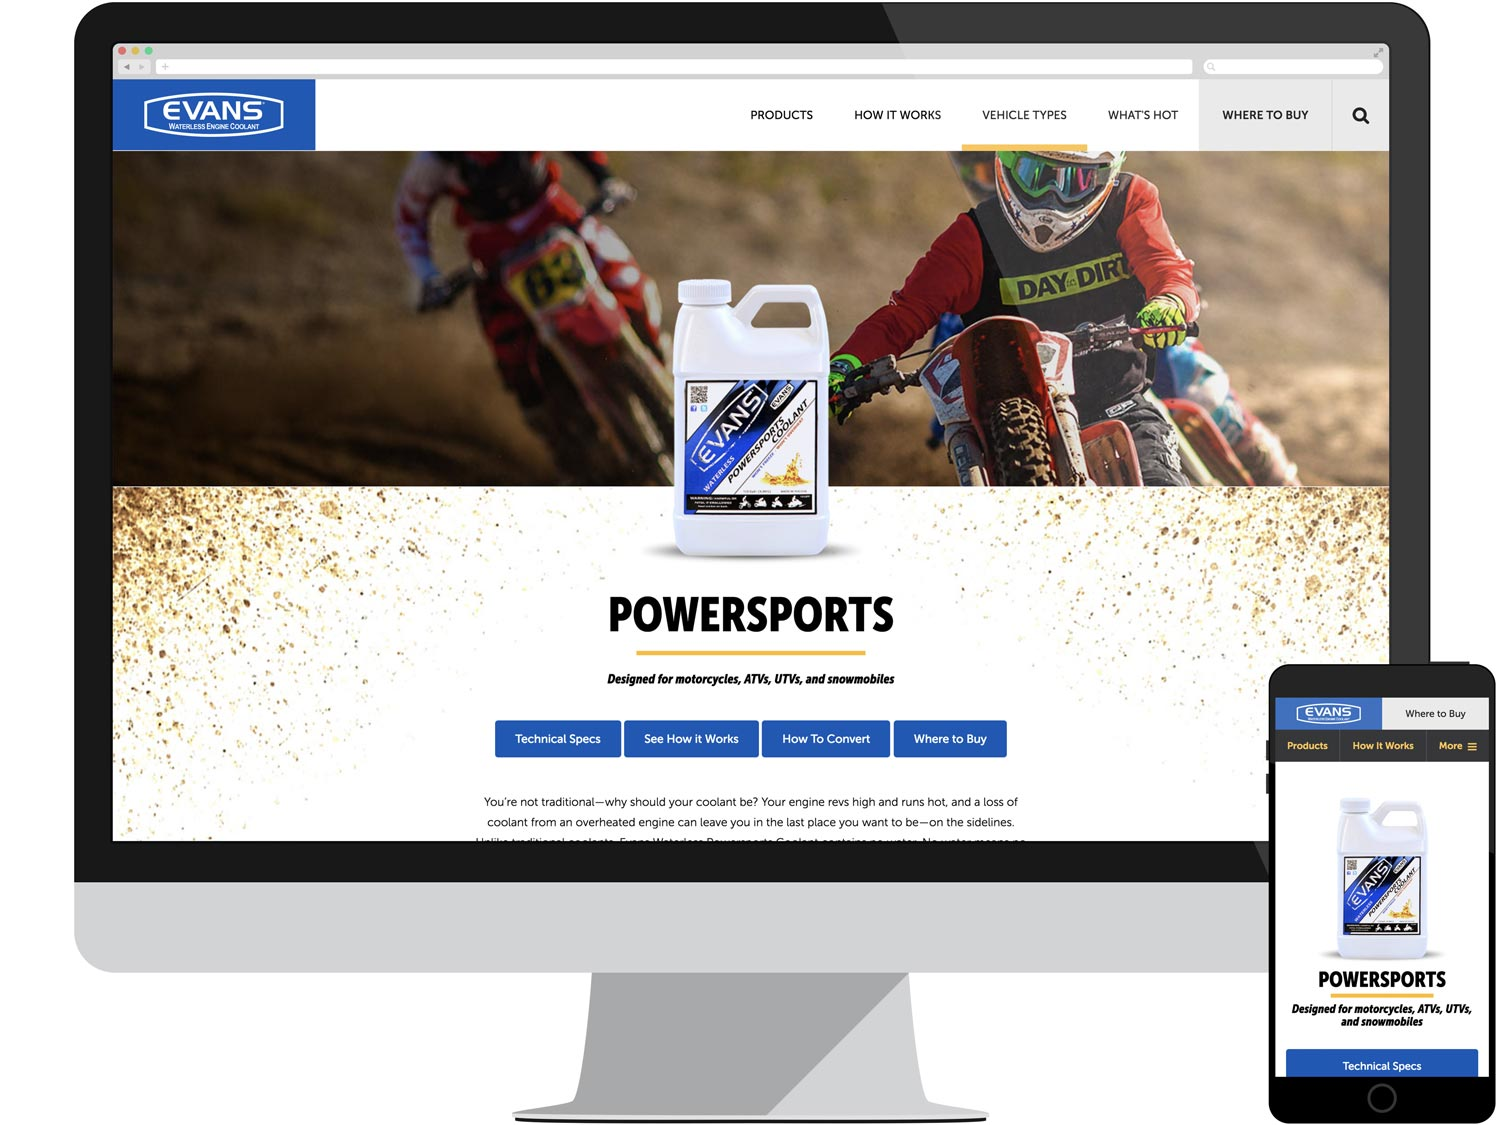 Audience Page - Powersports